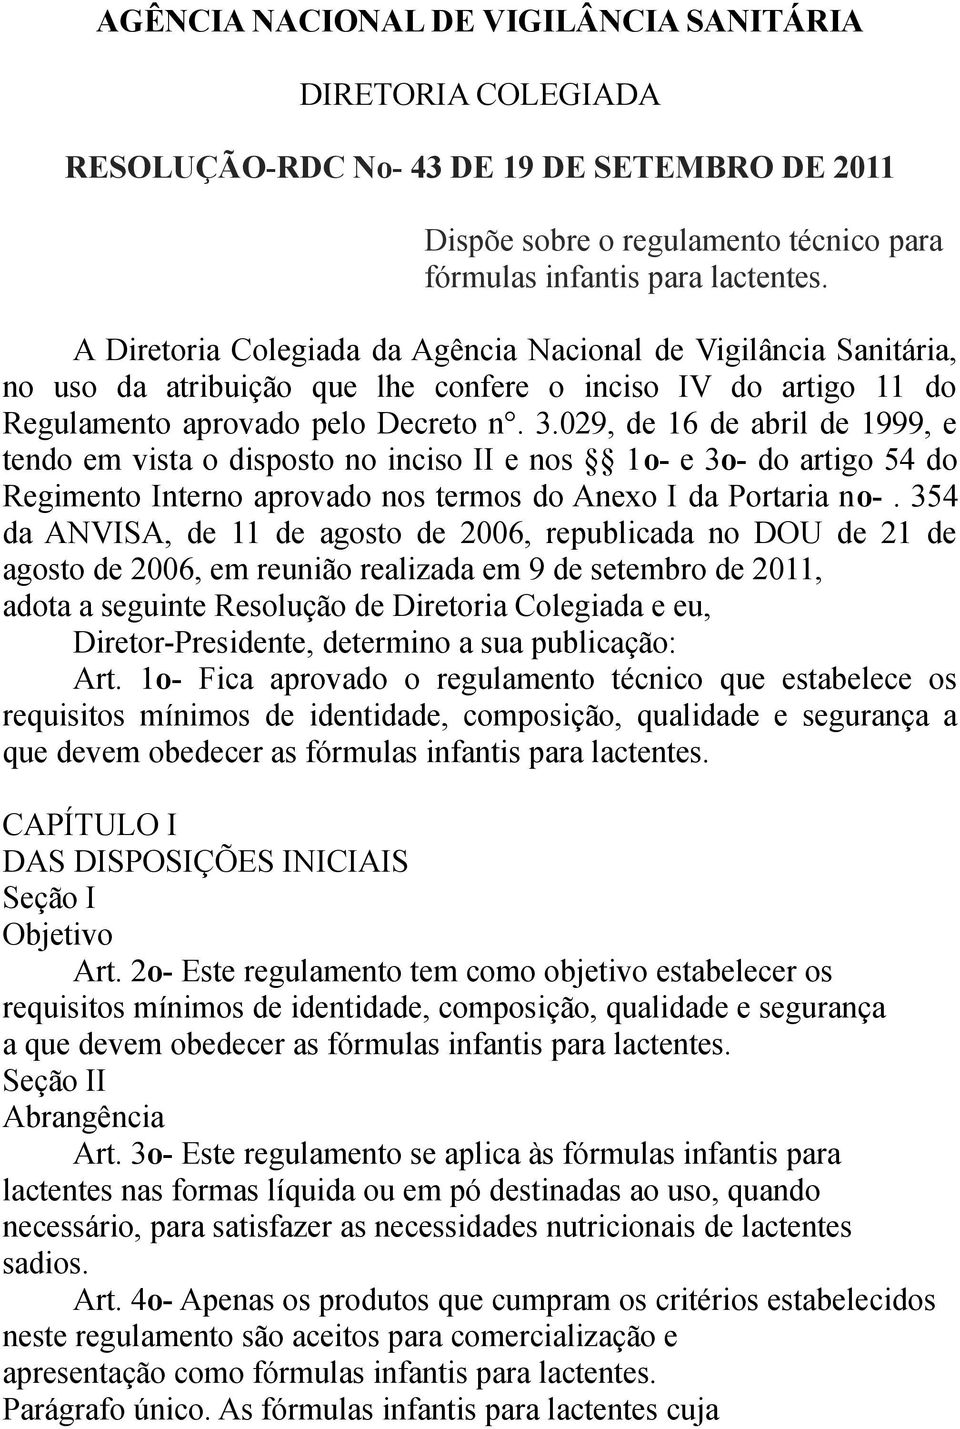 029, de 16 de abril de 1999, e tendo em vista o disposto no inciso II e nos 1o- e 3o- do artigo 54 do Regimento Interno aprovado nos termos do Anexo I da Portaria no-.